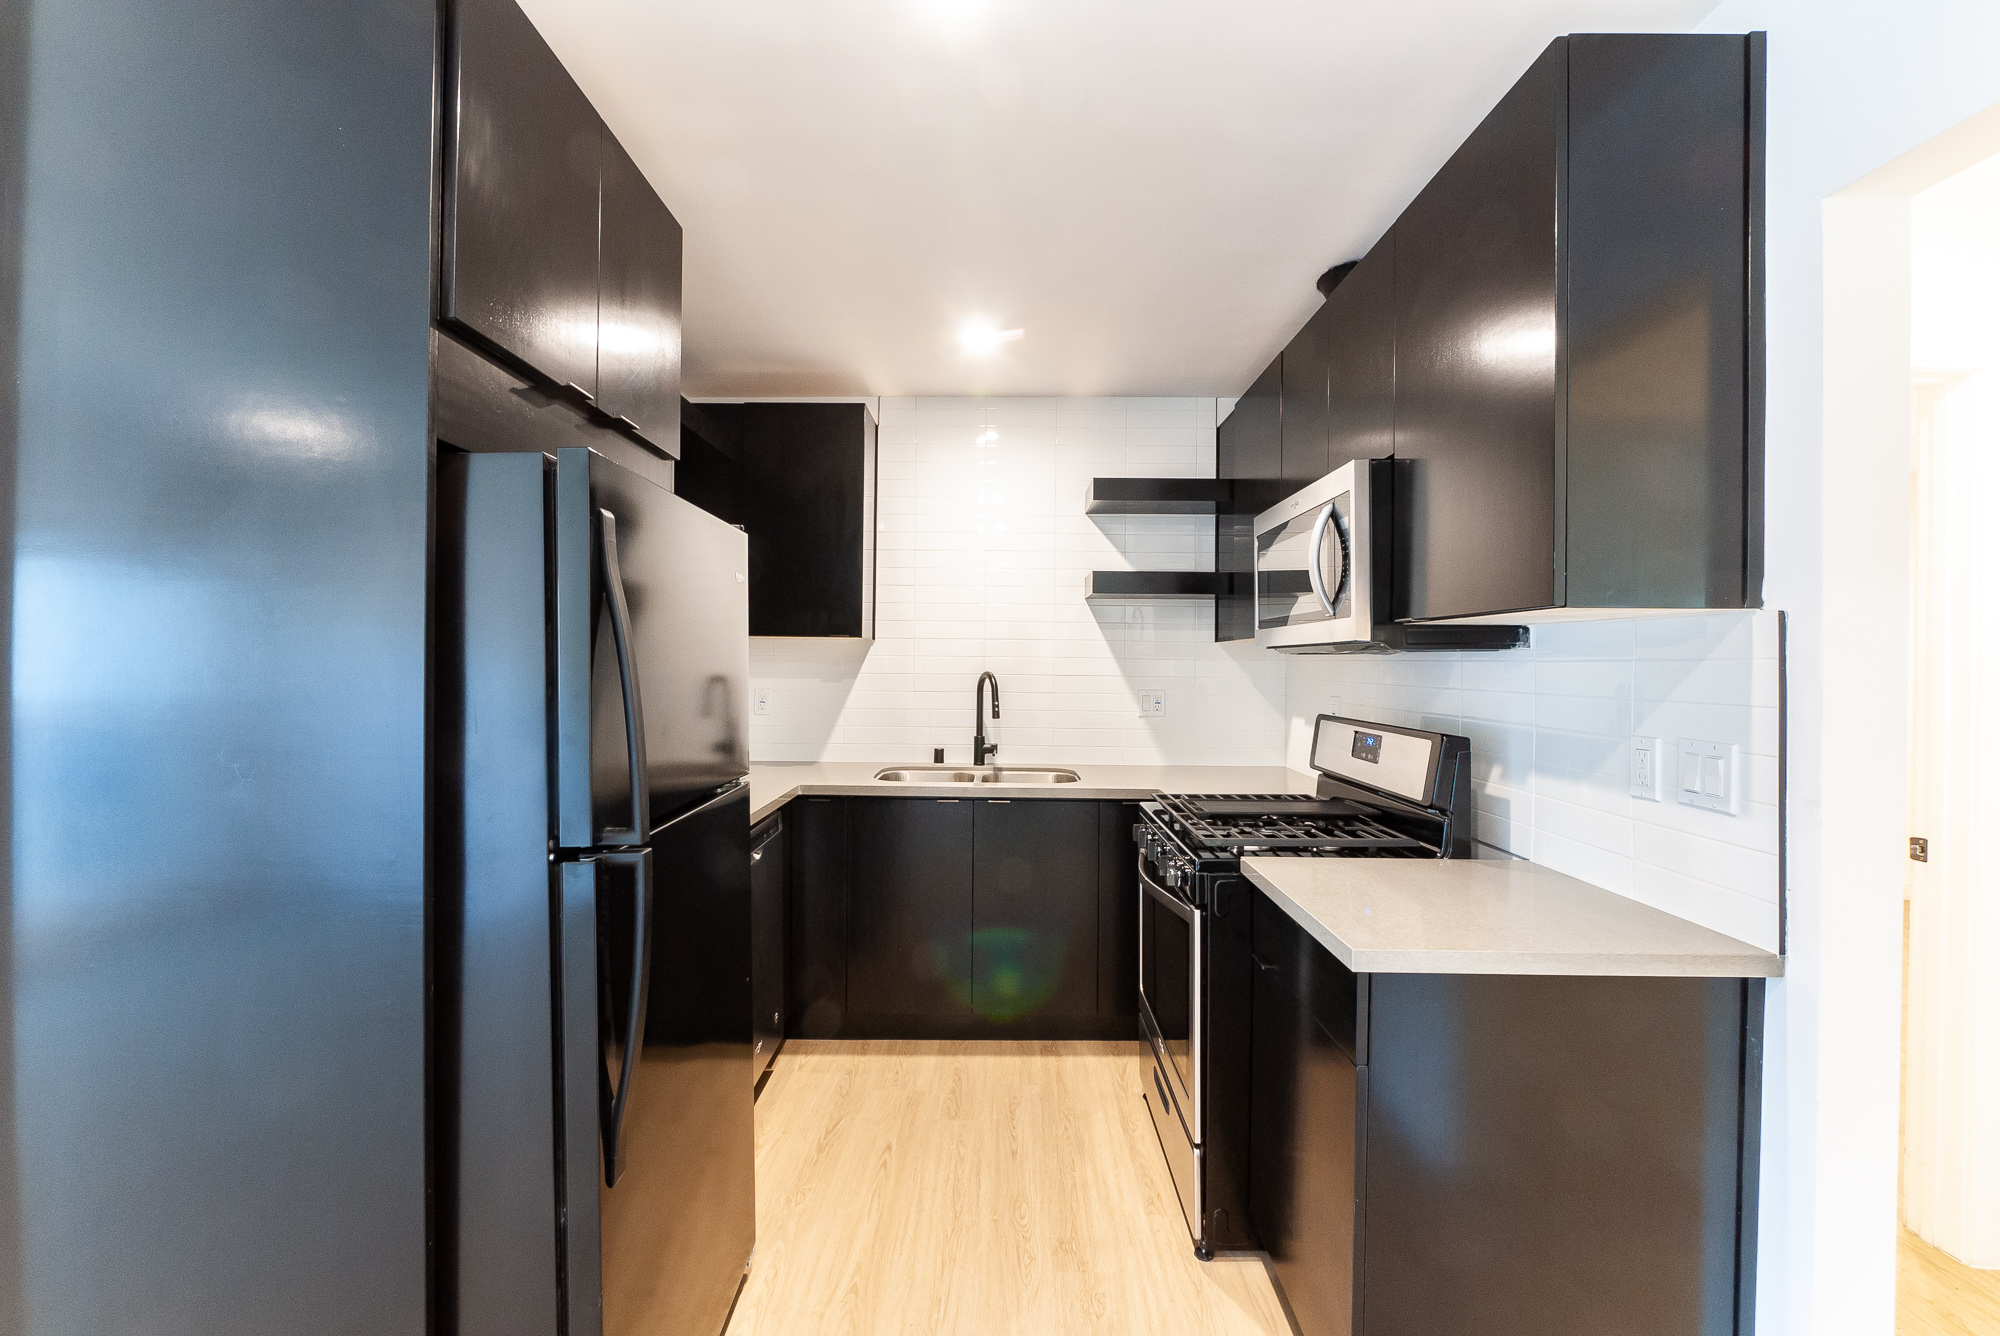 Modern Prime Ktown Apartment! | Renovated 2/1 With Sleek Appliances & In-Unit W/D | AC Inluded